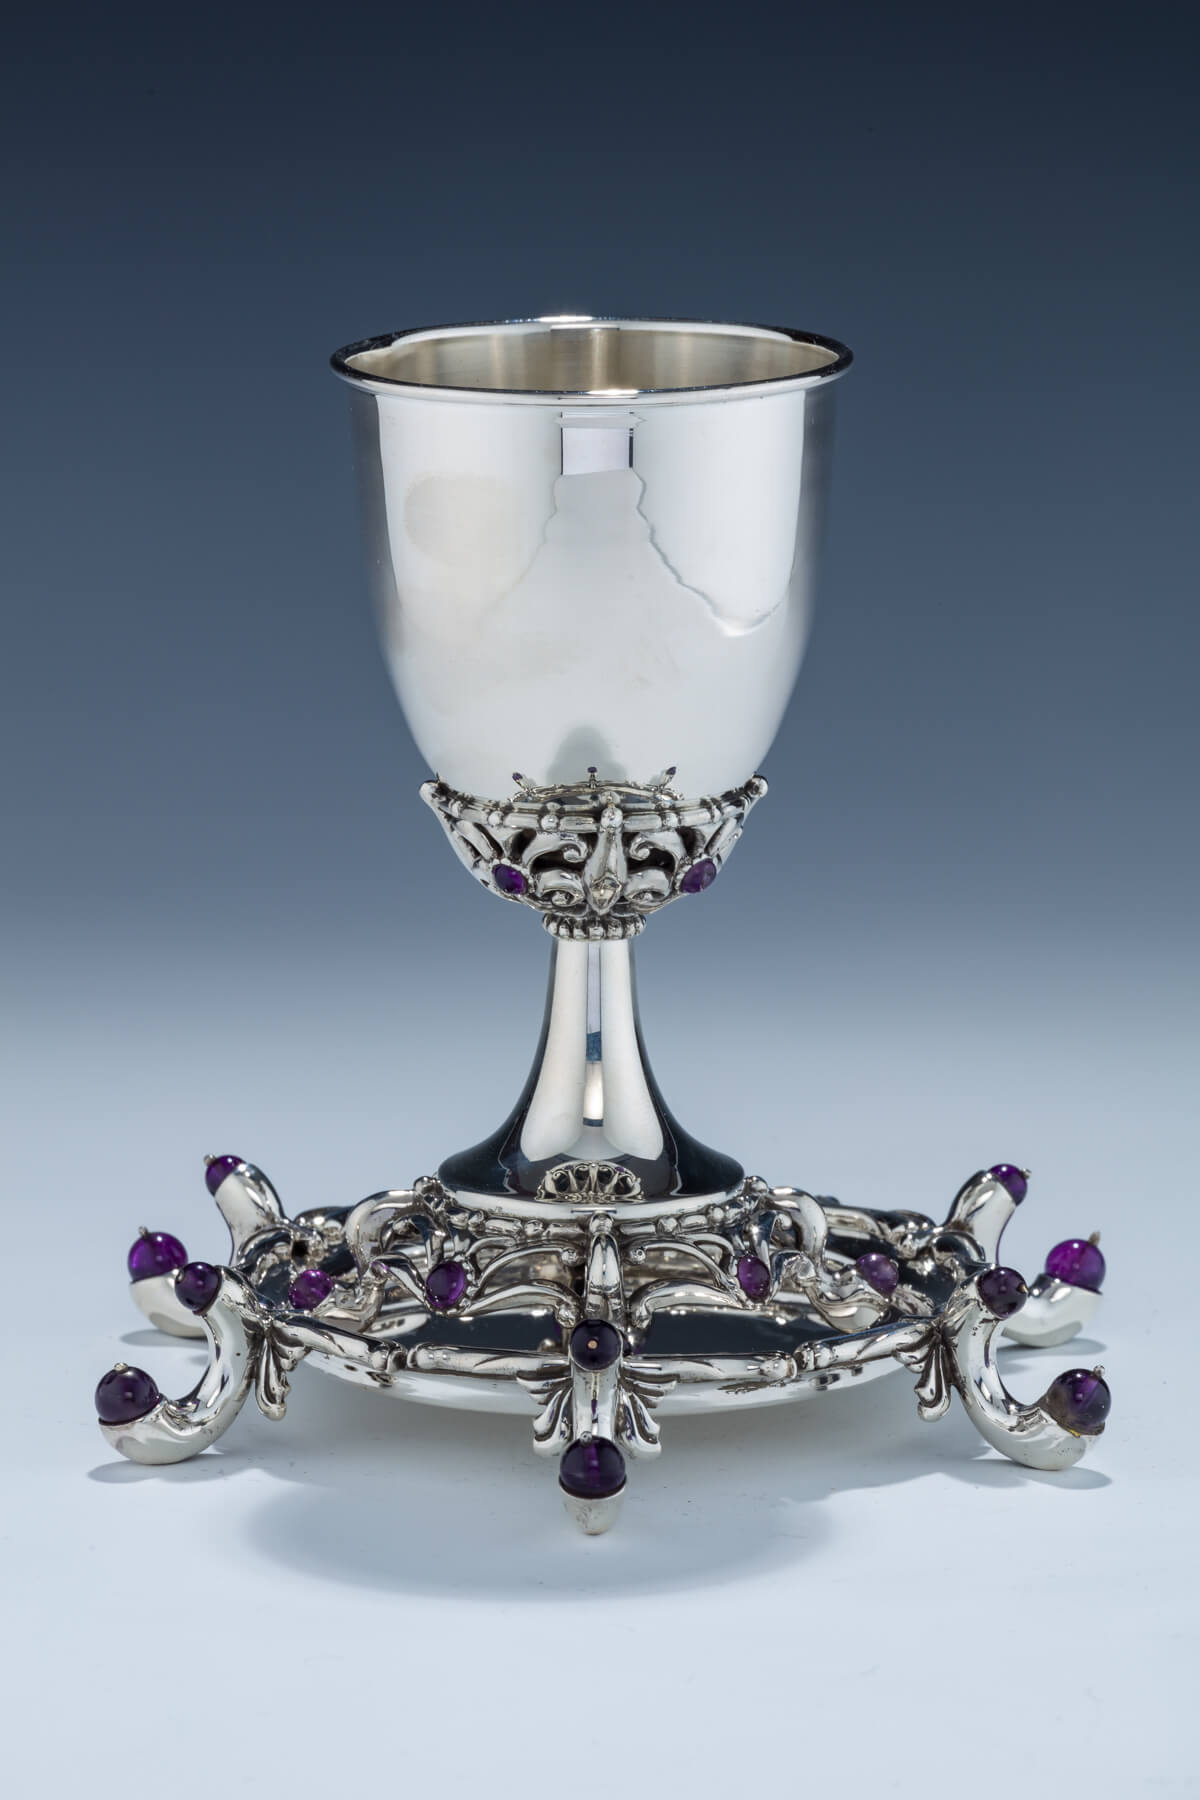 134. A Sterling & Amber Kiddush Goblet & Underplate by Josef Rodjoro